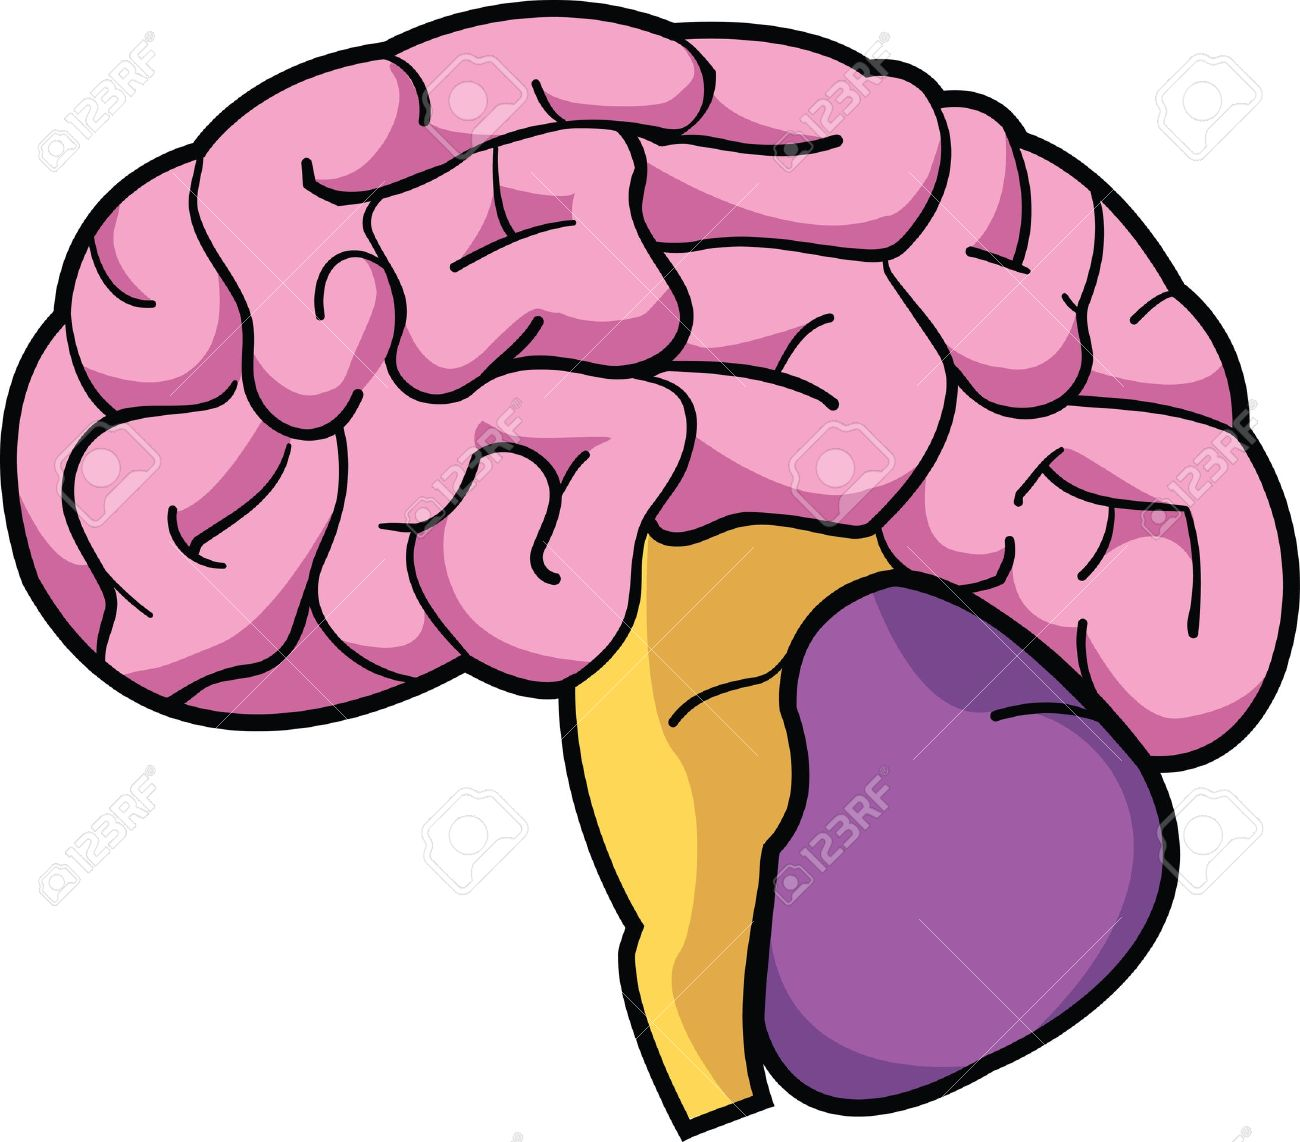 A colorful cartoon depiction of a human brain. Stock Vector - 9558157